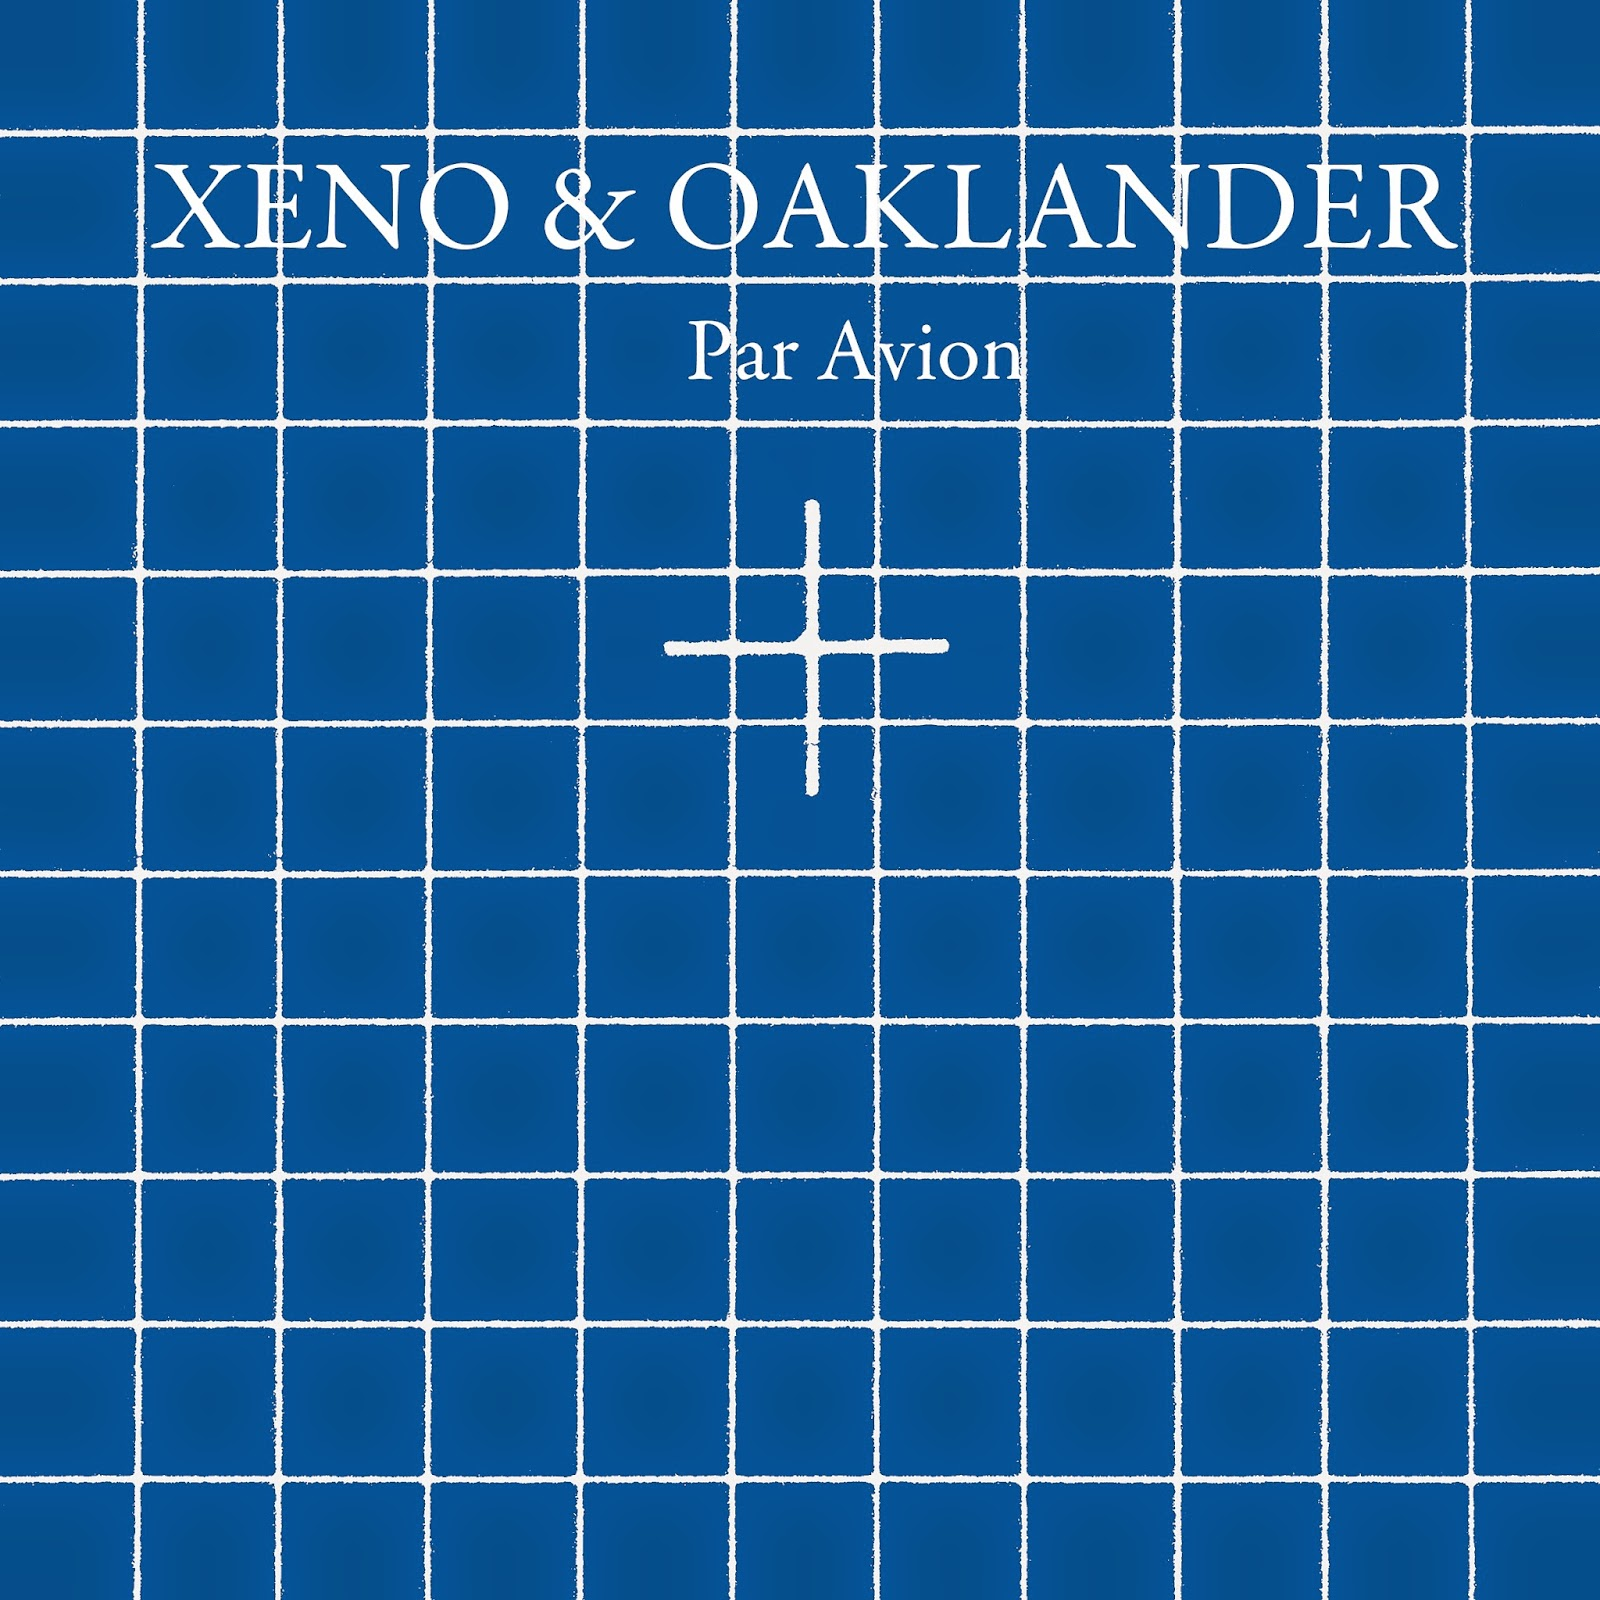 discosafari - XENO & OAKLANDER - Par Avion - Ghostly International